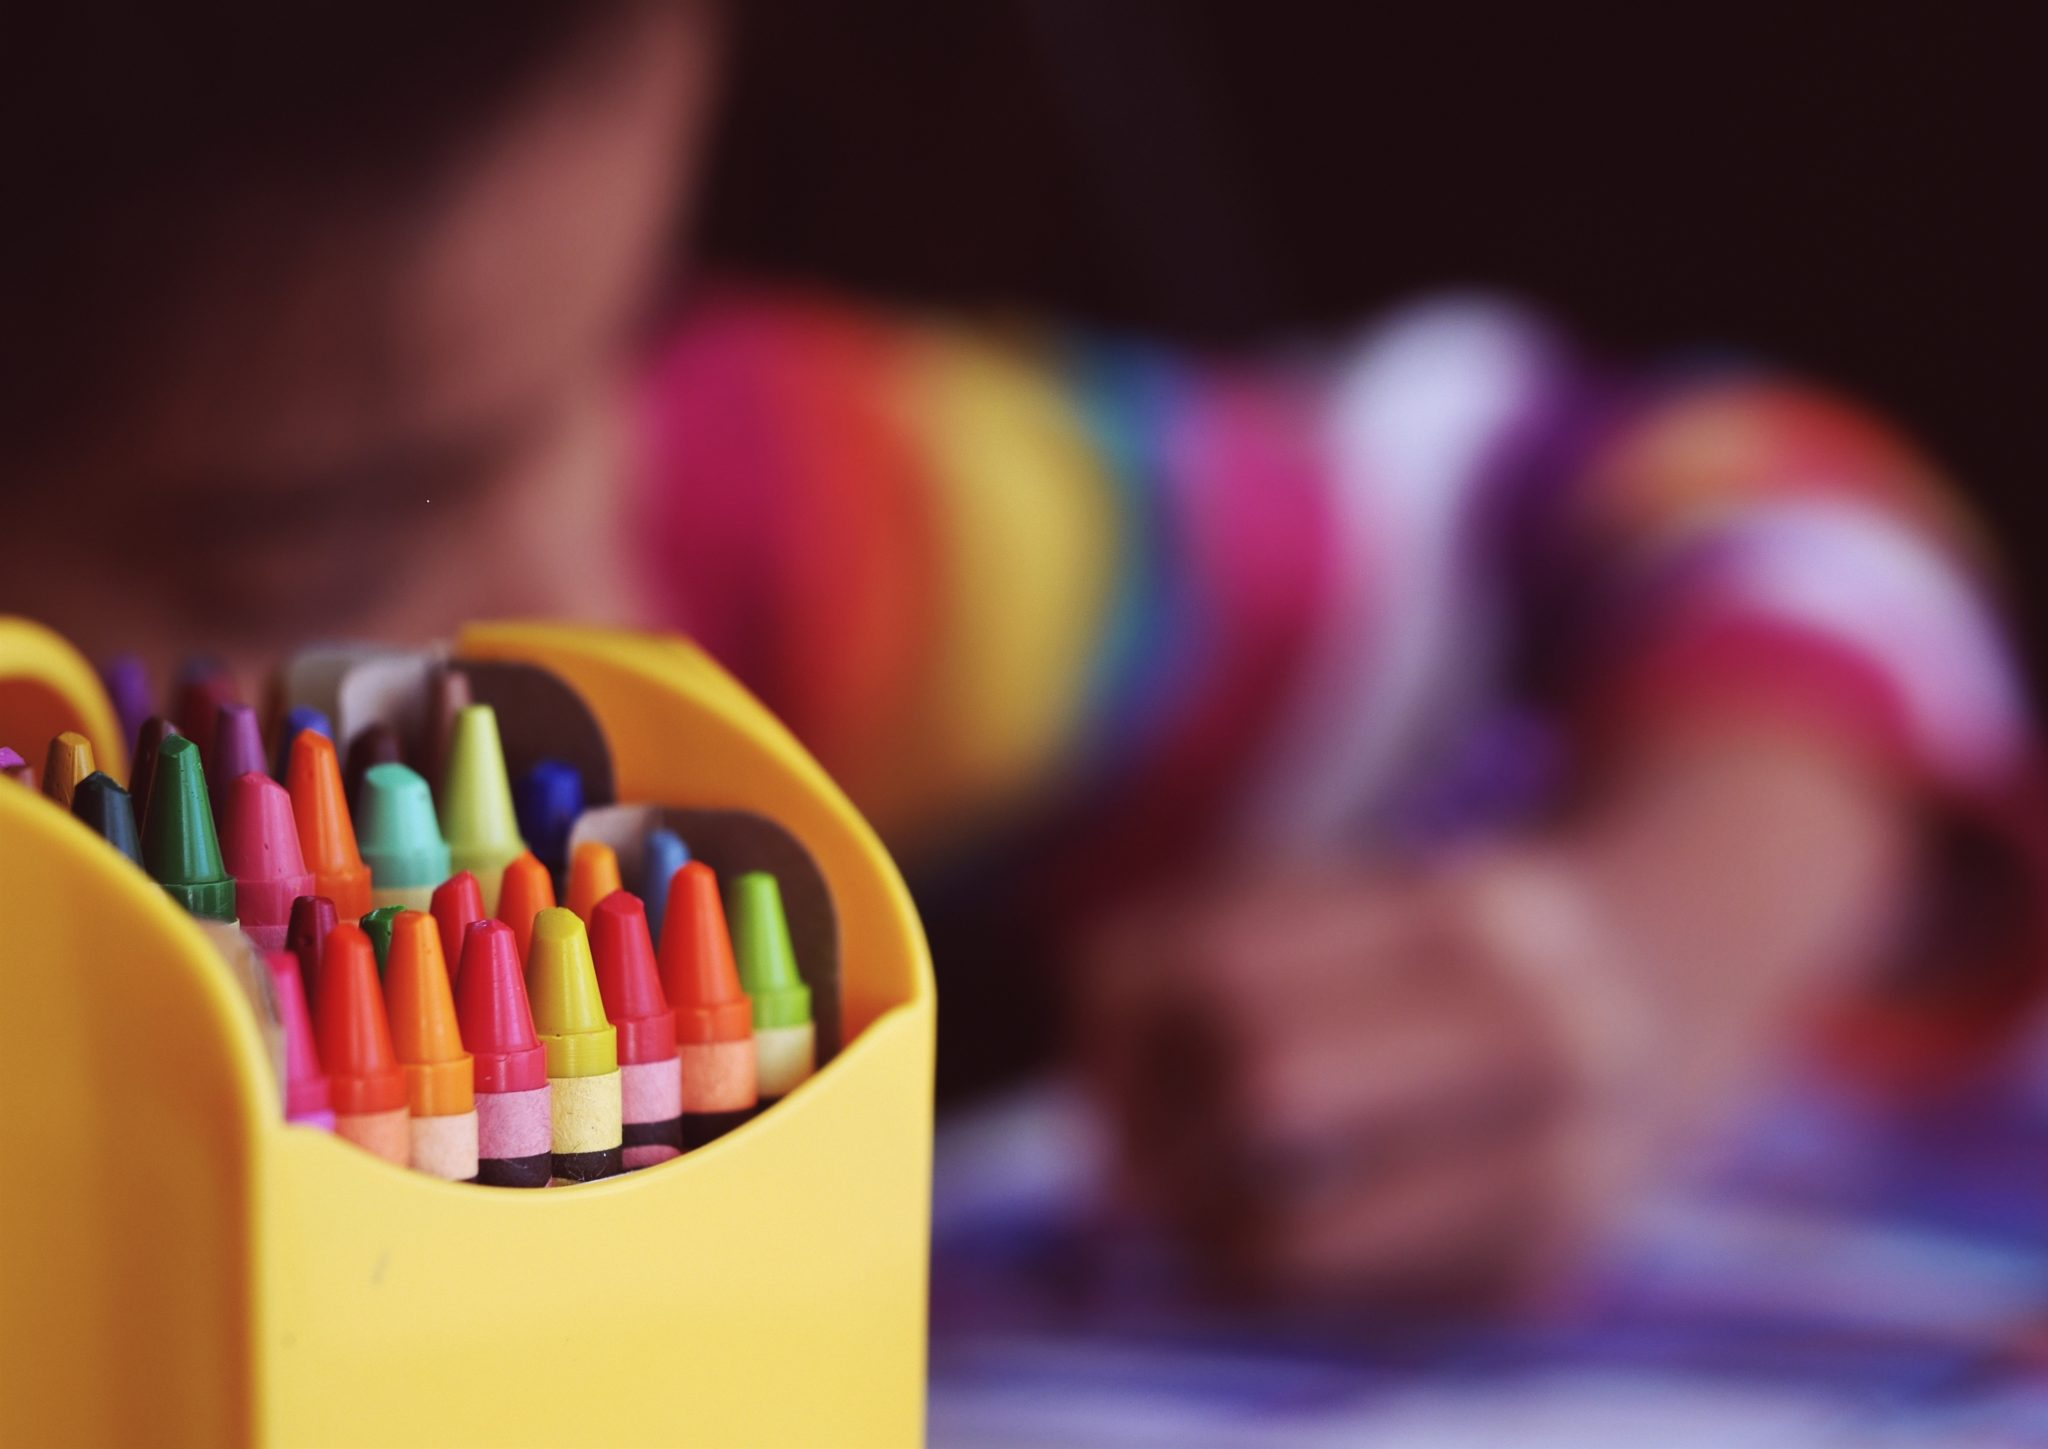 A child uses crayons to draw a picture